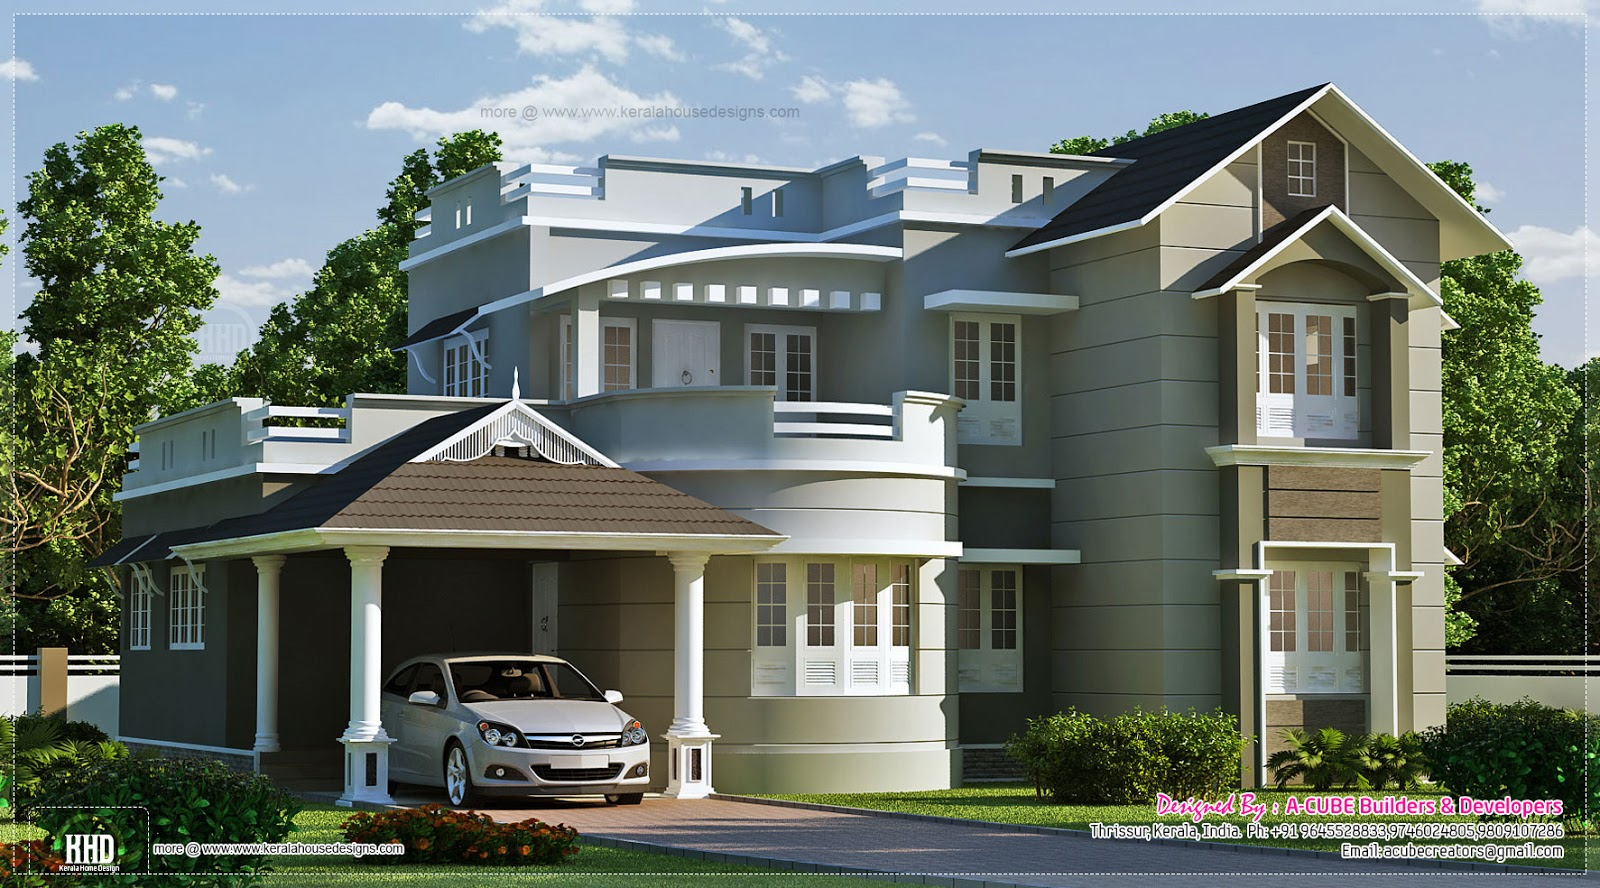 New style home exterior in 1800 kerala home for Kerala new house models